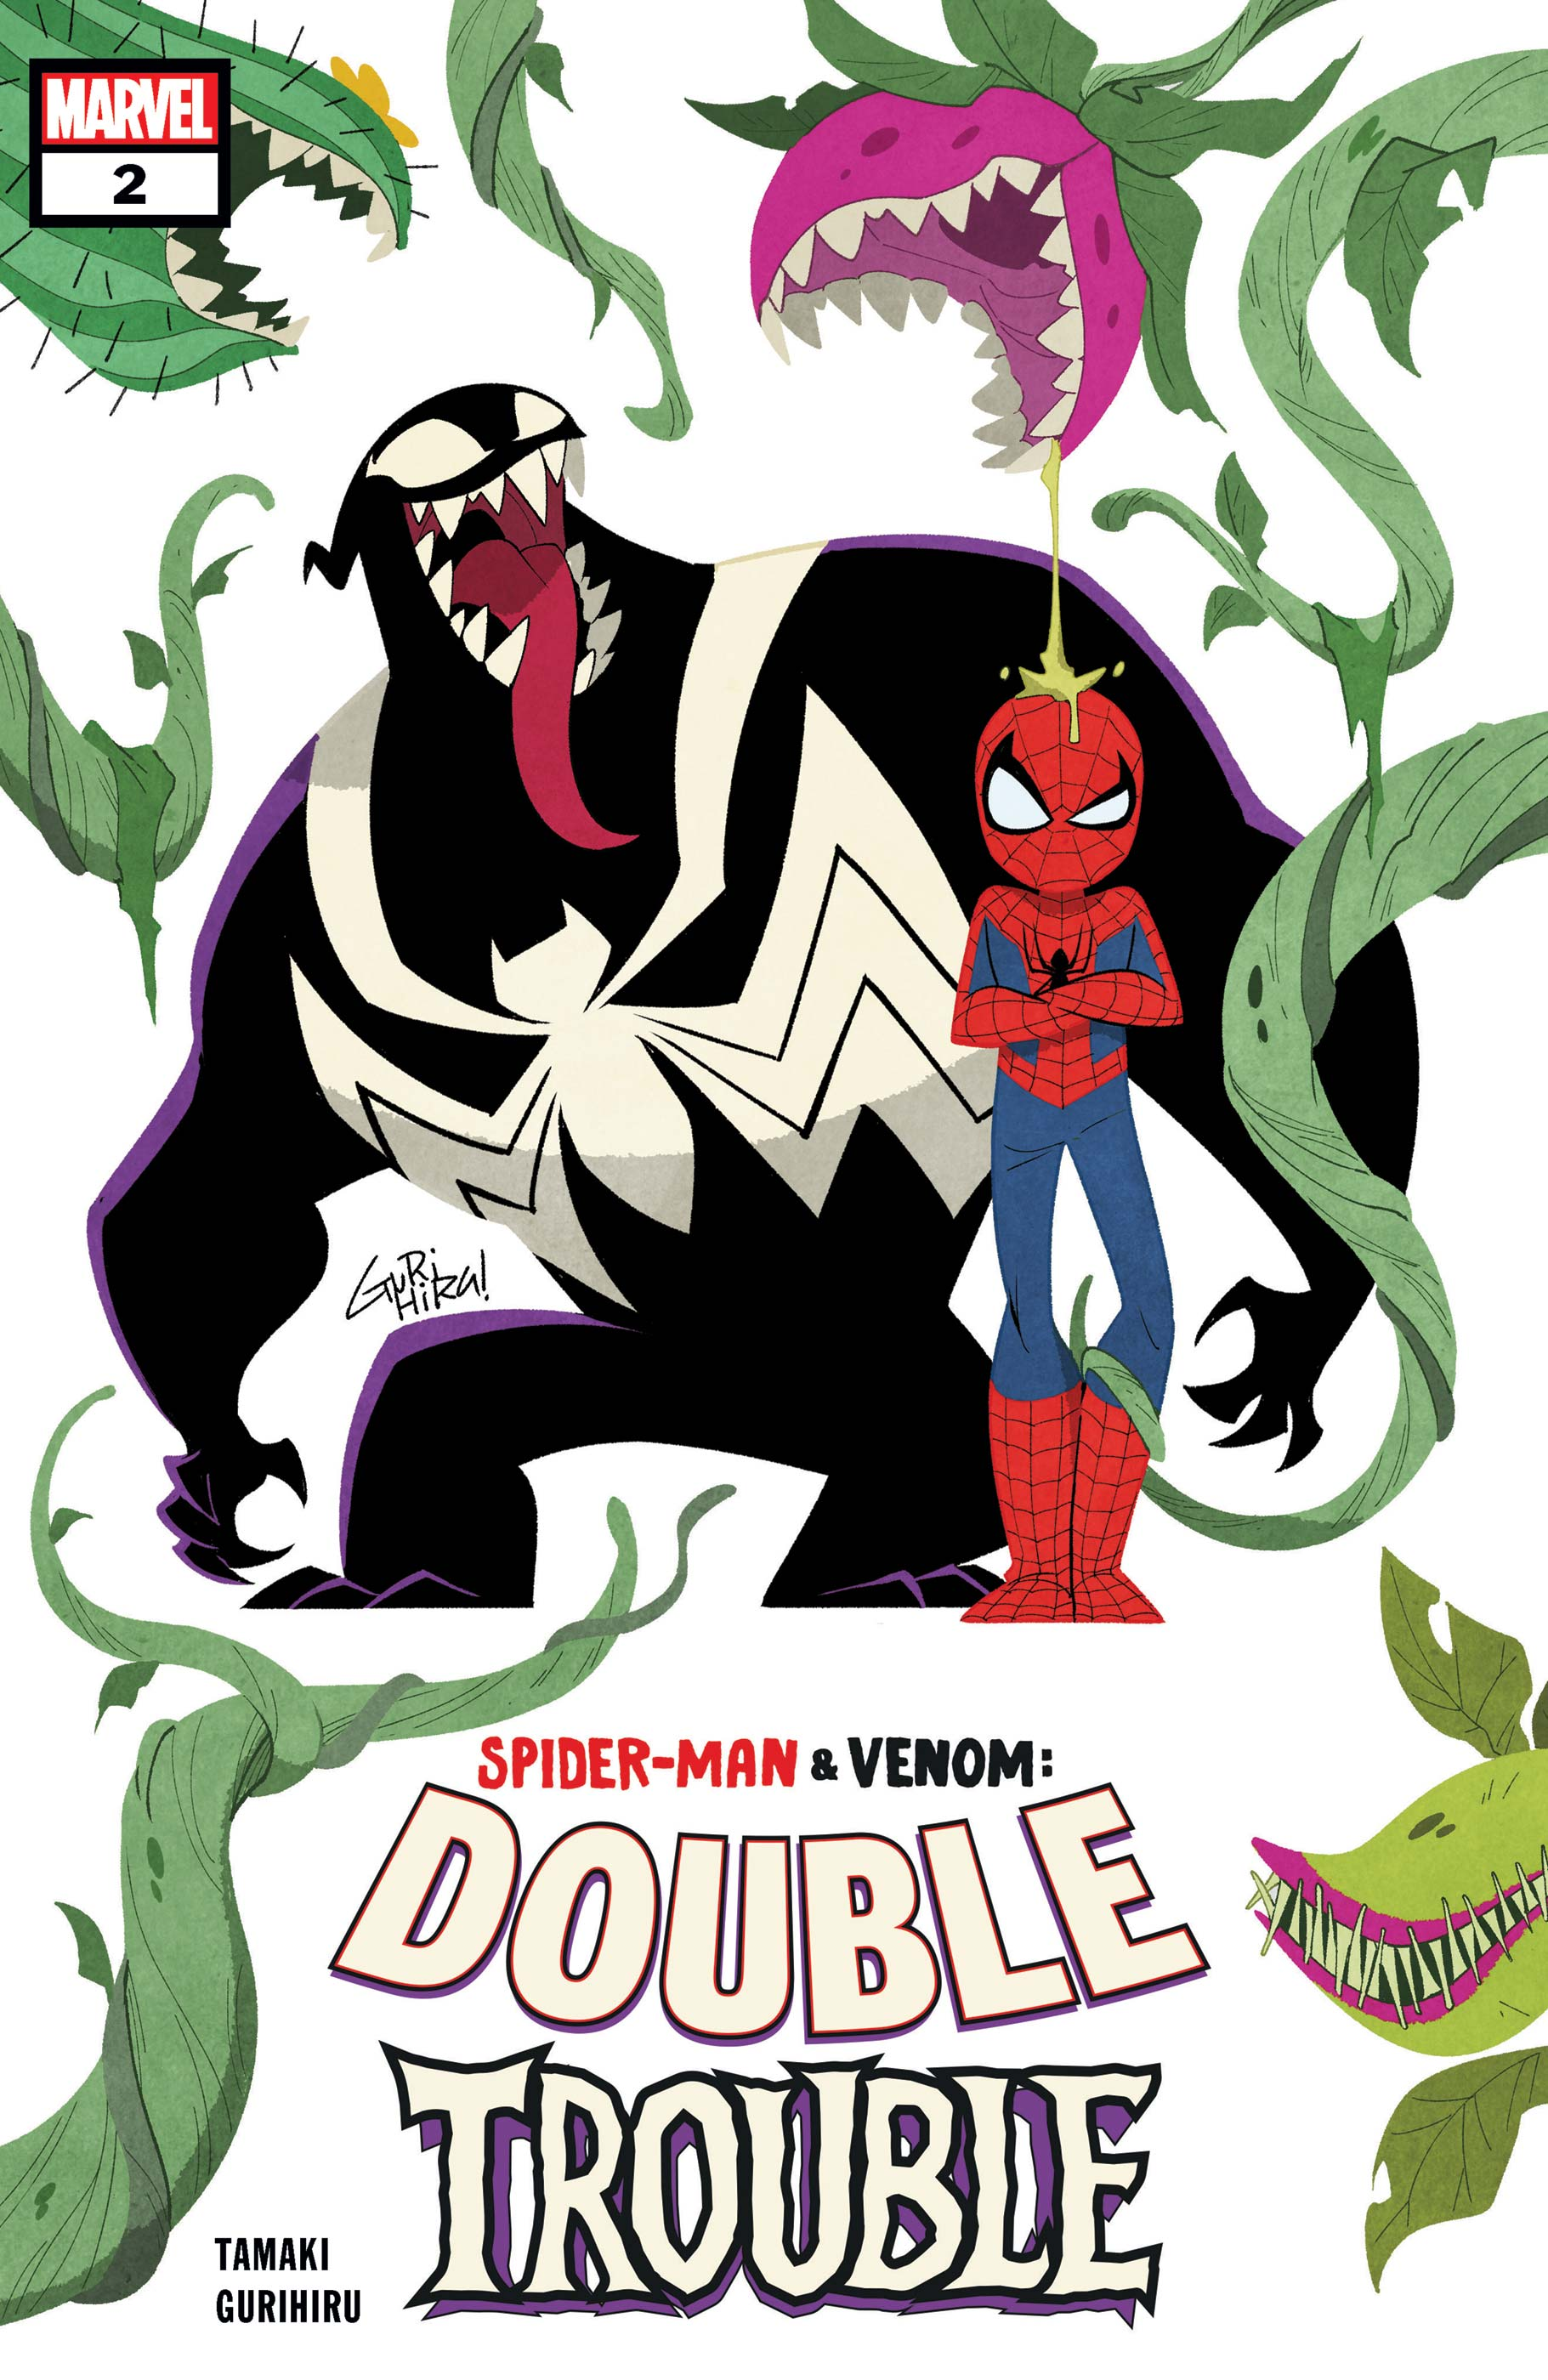 Spider-Man & Venom: Double Trouble (2019) #2